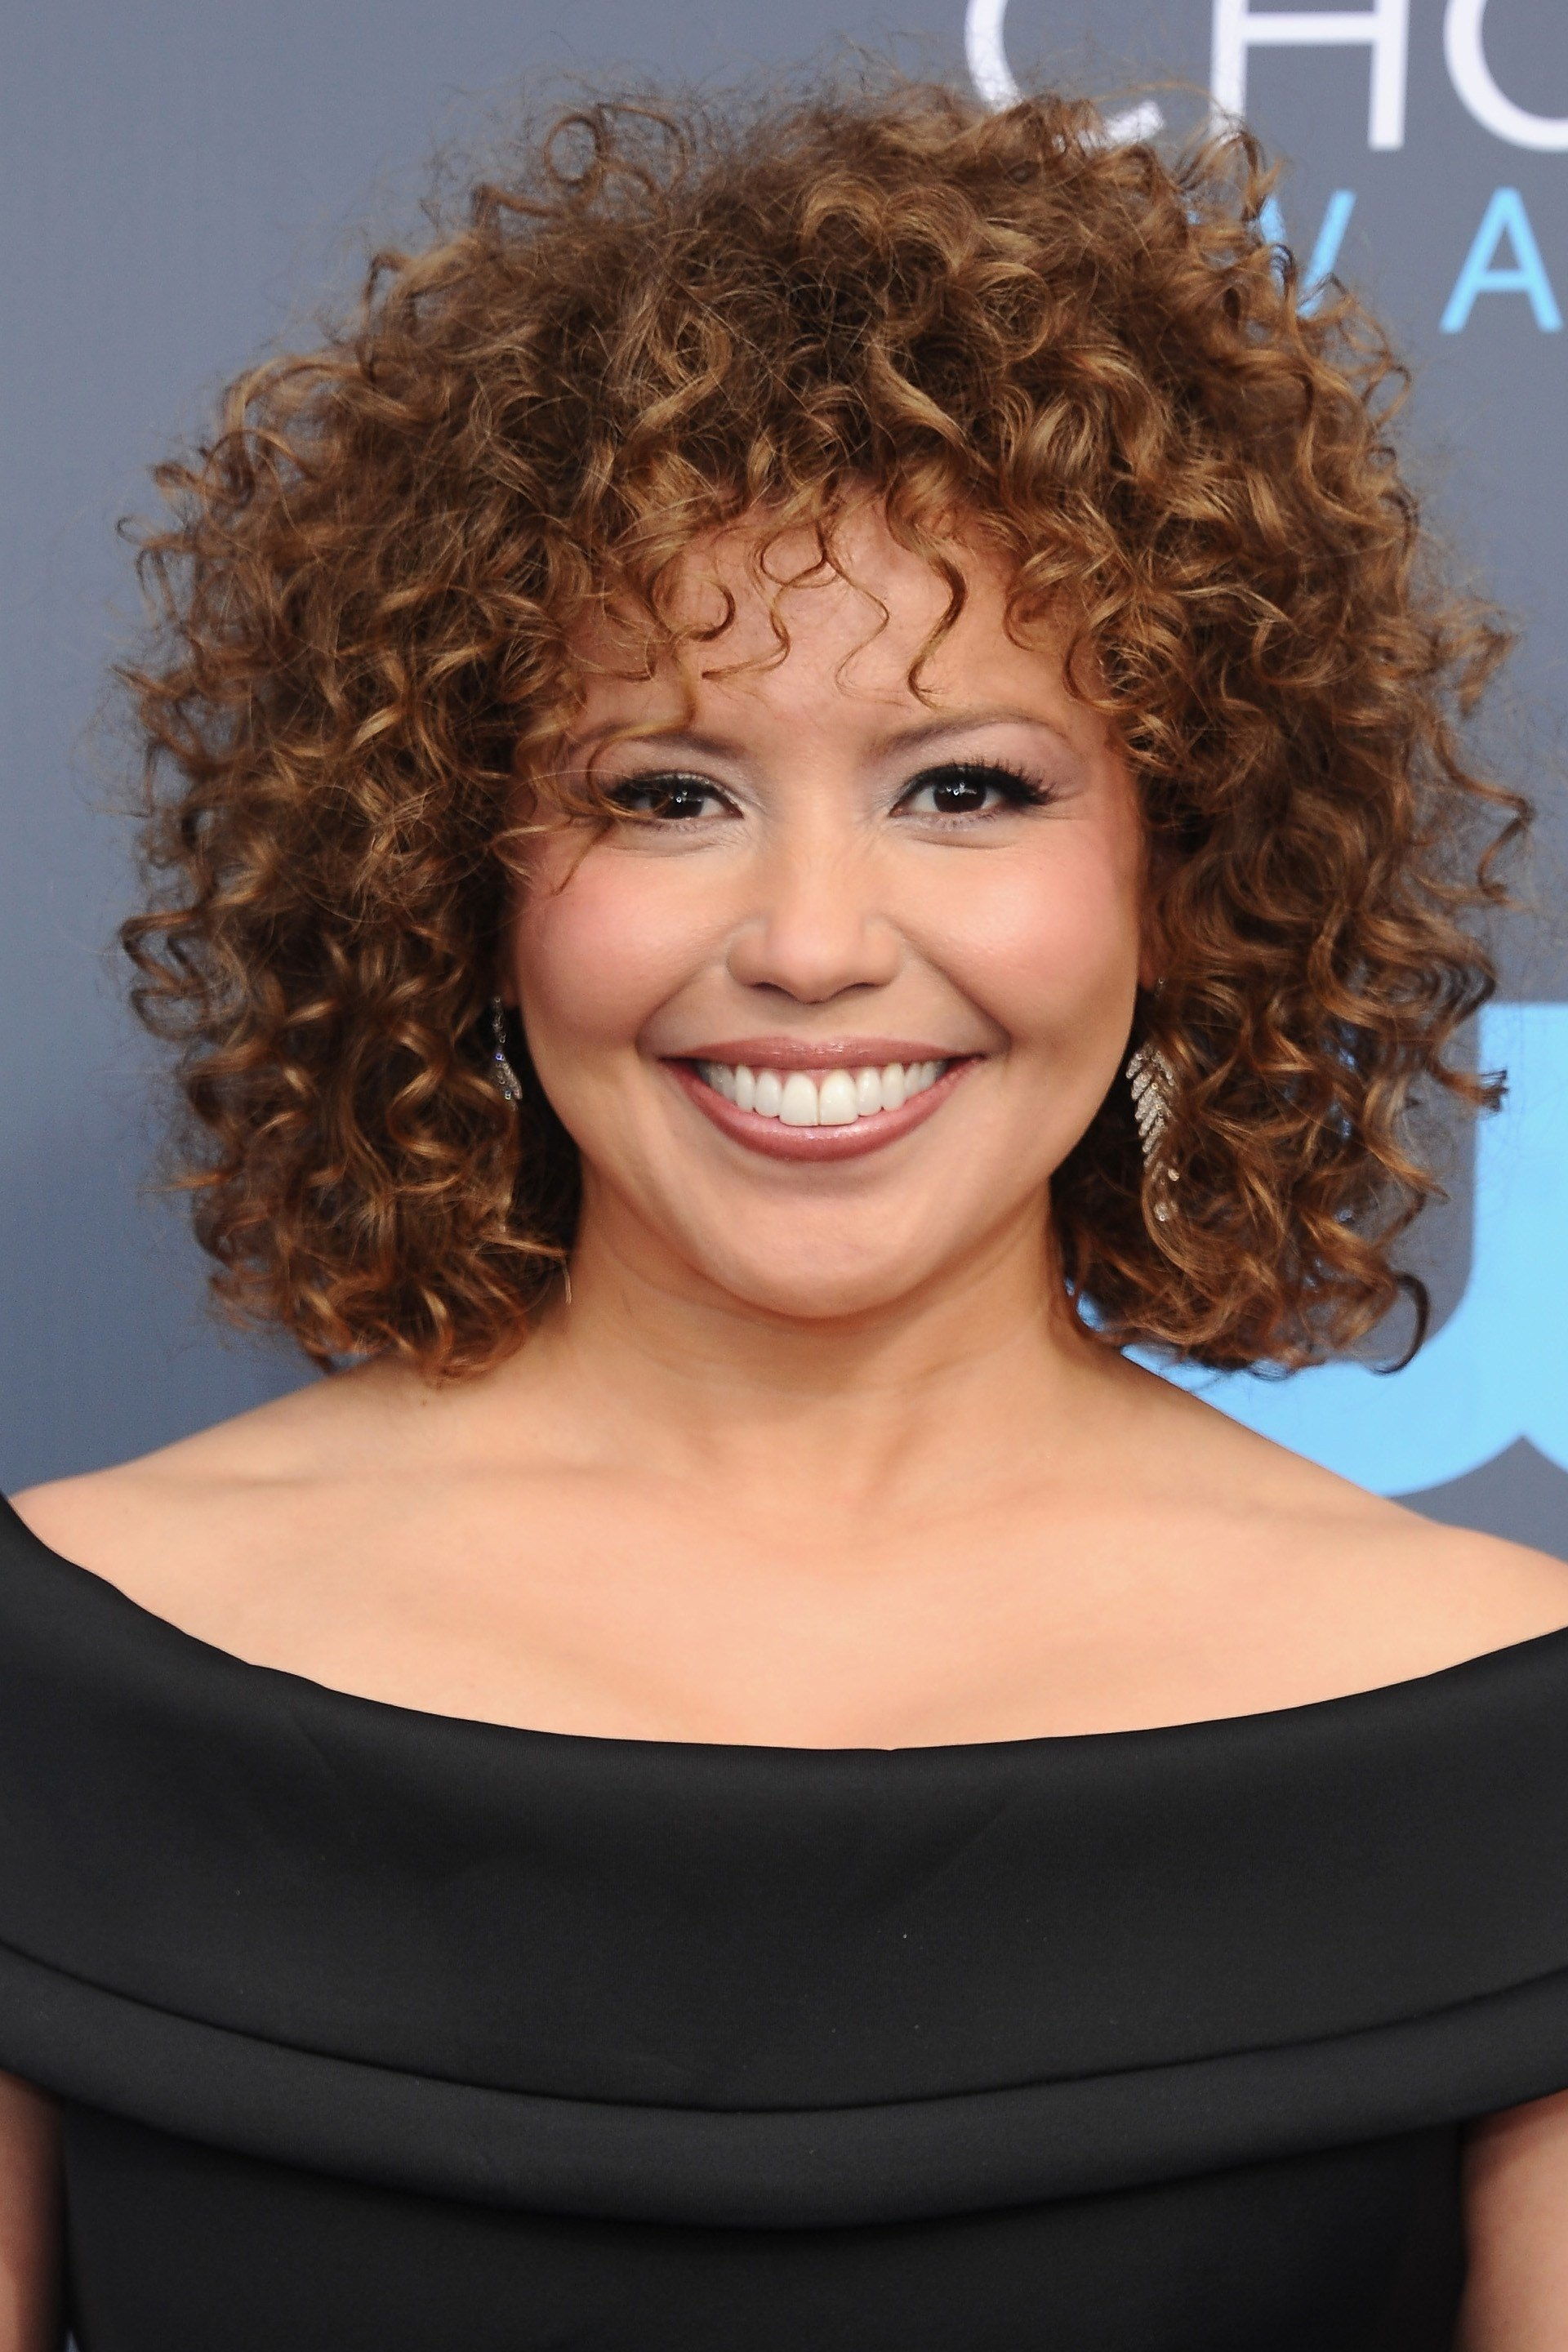 The Best 19 Celebrity Short Curly Hair Ideas Short Haircuts And Hairstyles For Curly Hair Pictures